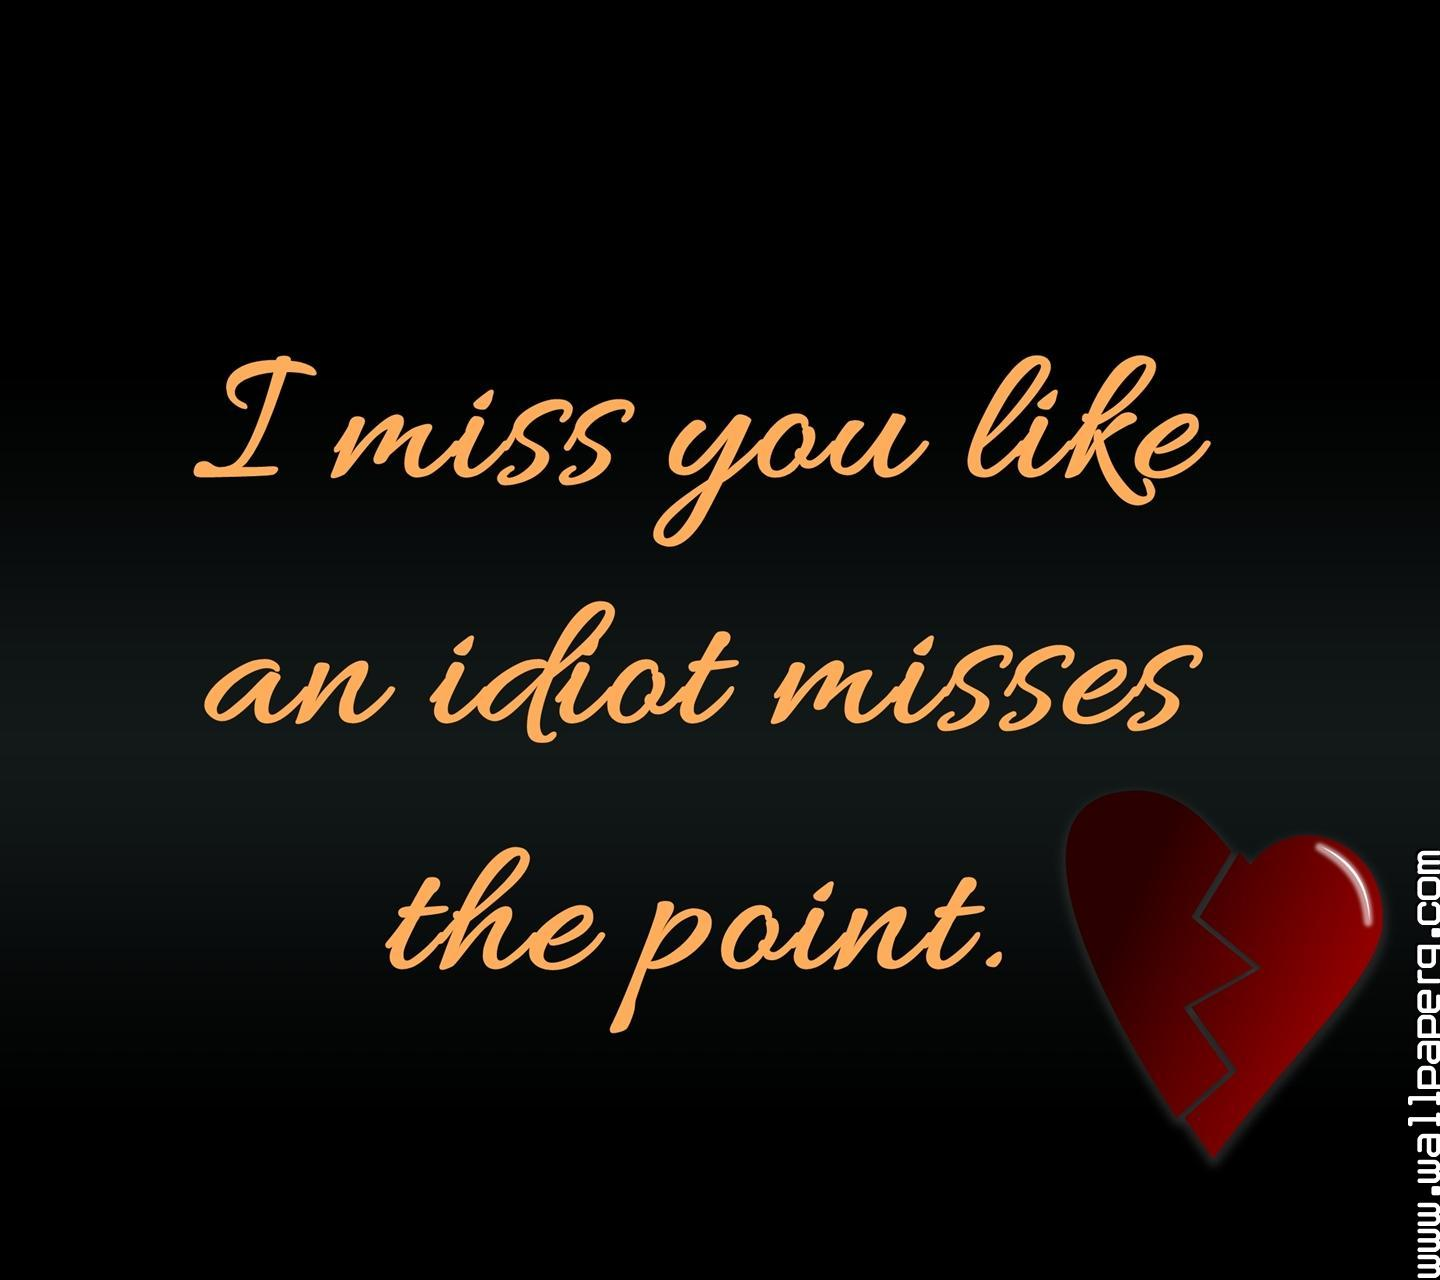 Wallpaper download i miss you - Download I Miss You 9 Miss You Hd Wallpapers